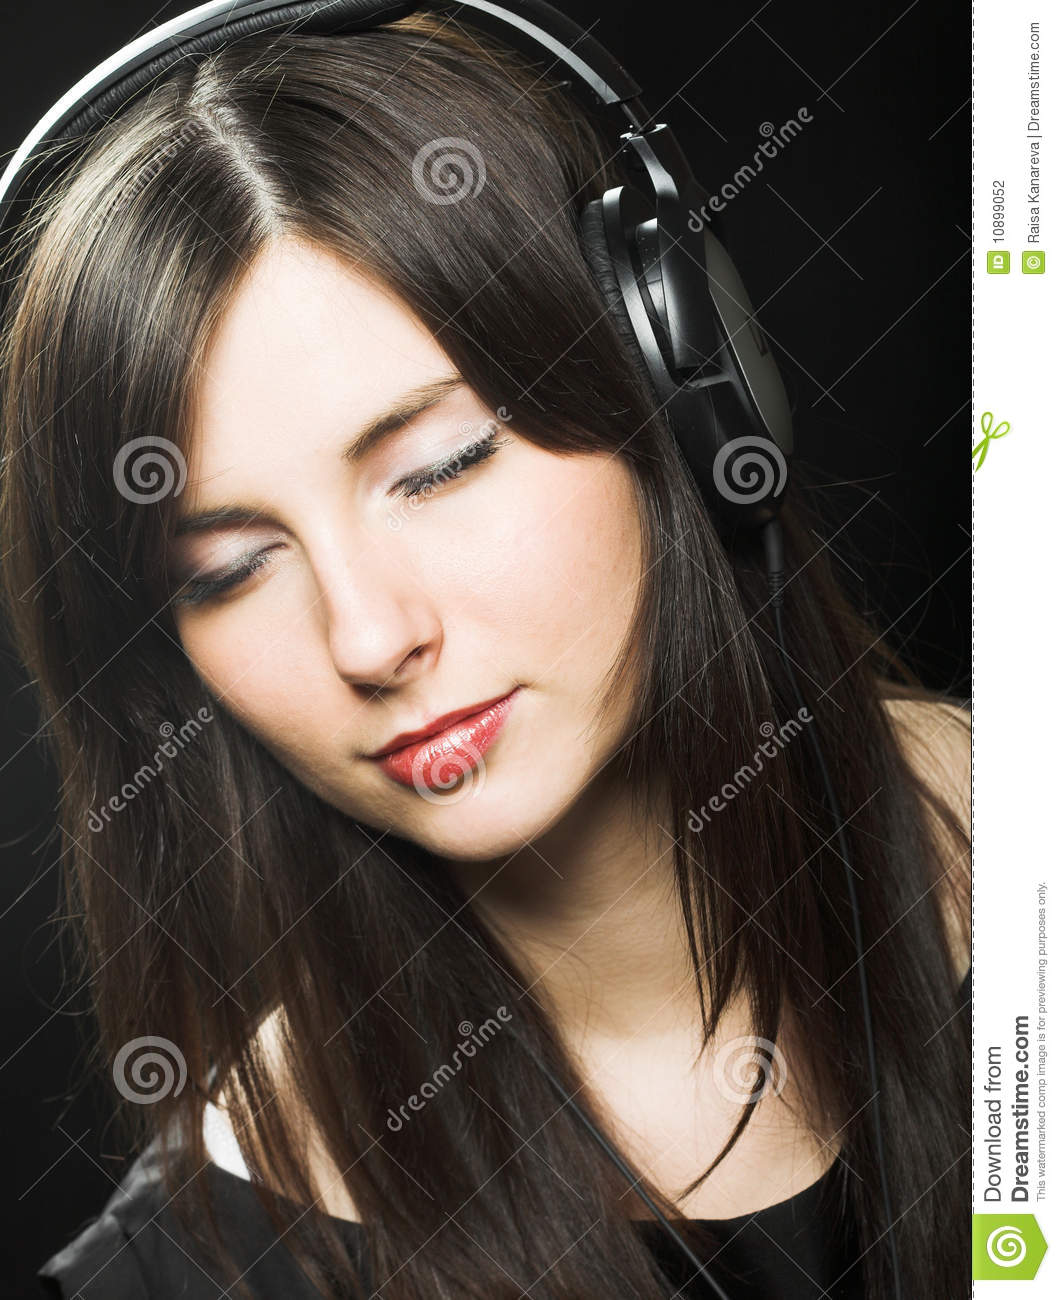 Beautiful Headphones Beautiful Headphones Girl Stock Photography Image 10899052